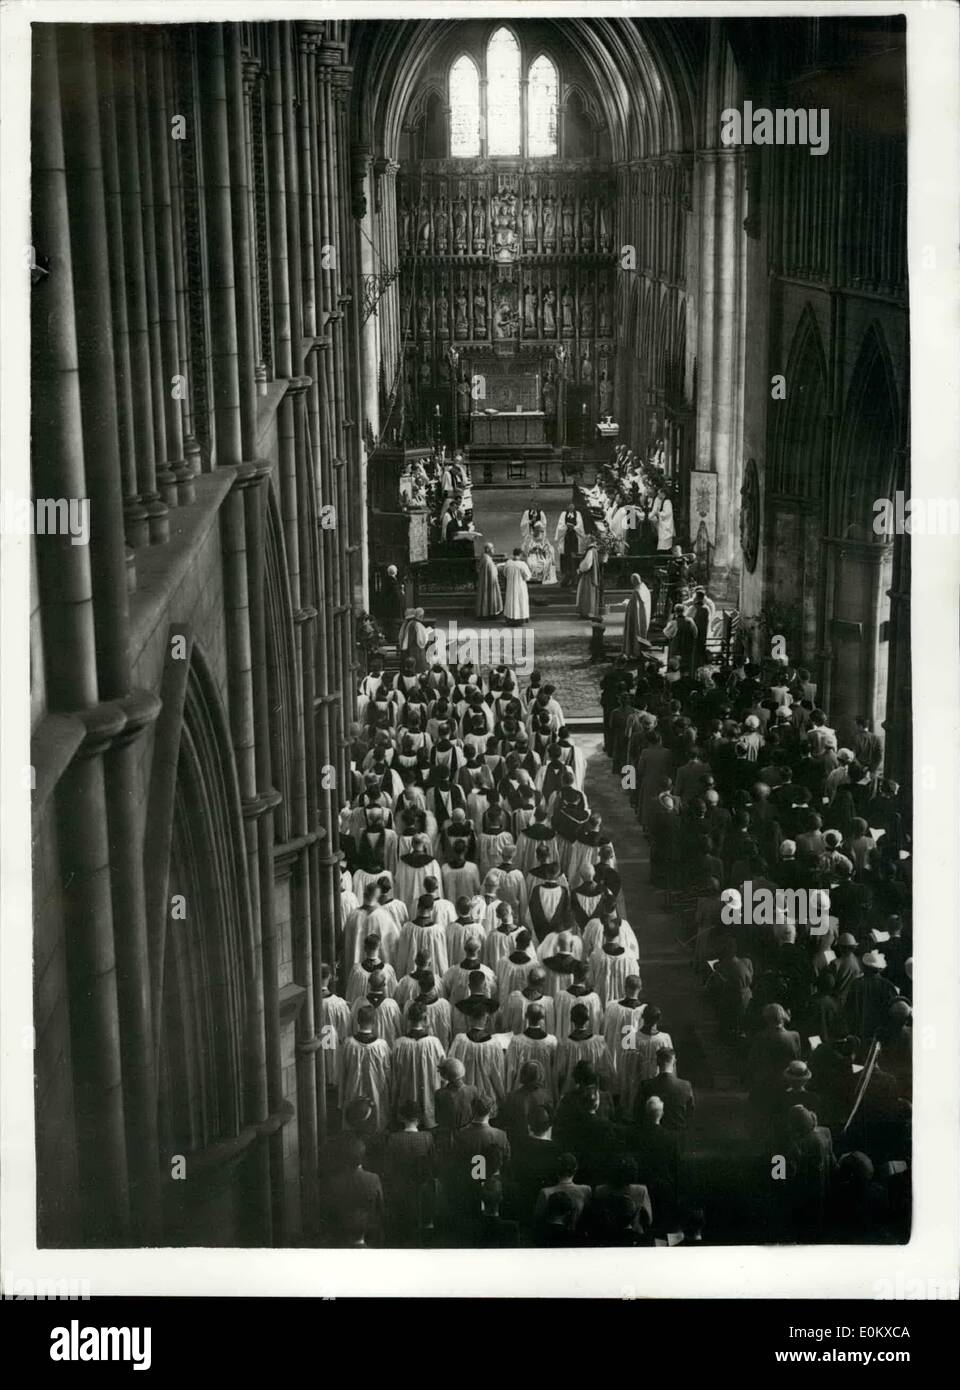 May 05, 1952 - Consecration of New Bishop: The consecration of the Re. William Percy Gilpin, M.A., ( Missioner of Gloucester o, as Bishop Suffragan of Kingston - upon Thomas, by the Arch Bishop of Centerbury (Dr. Fisher), took place today at Southwark Cathedral. Photo shows General view inside the cathedral, during the consecration ceremony. - Stock Image